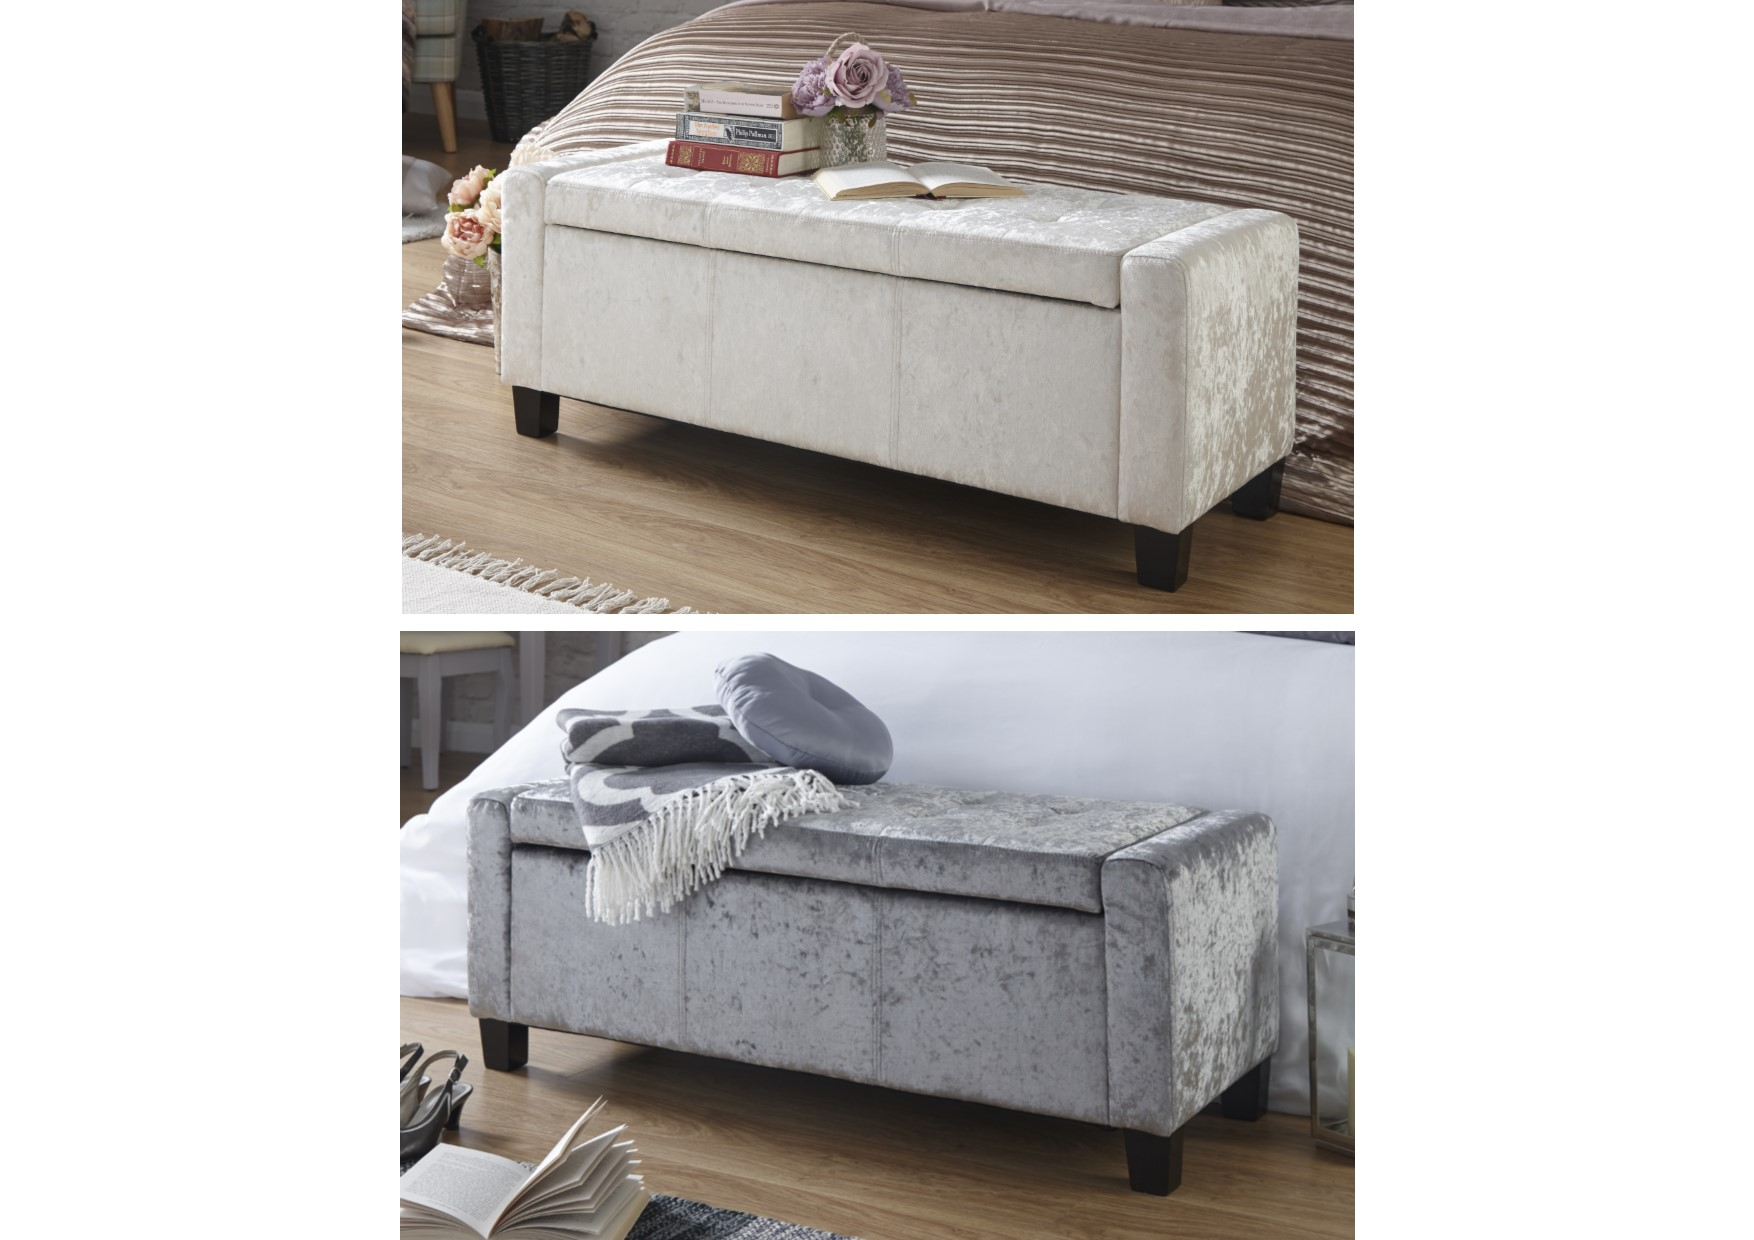 Ottomans Ellis Dark Grey Velvet Finish Storage Chest: Verona Oyster Cream Silver Grey Crushed Velvet Ottoman